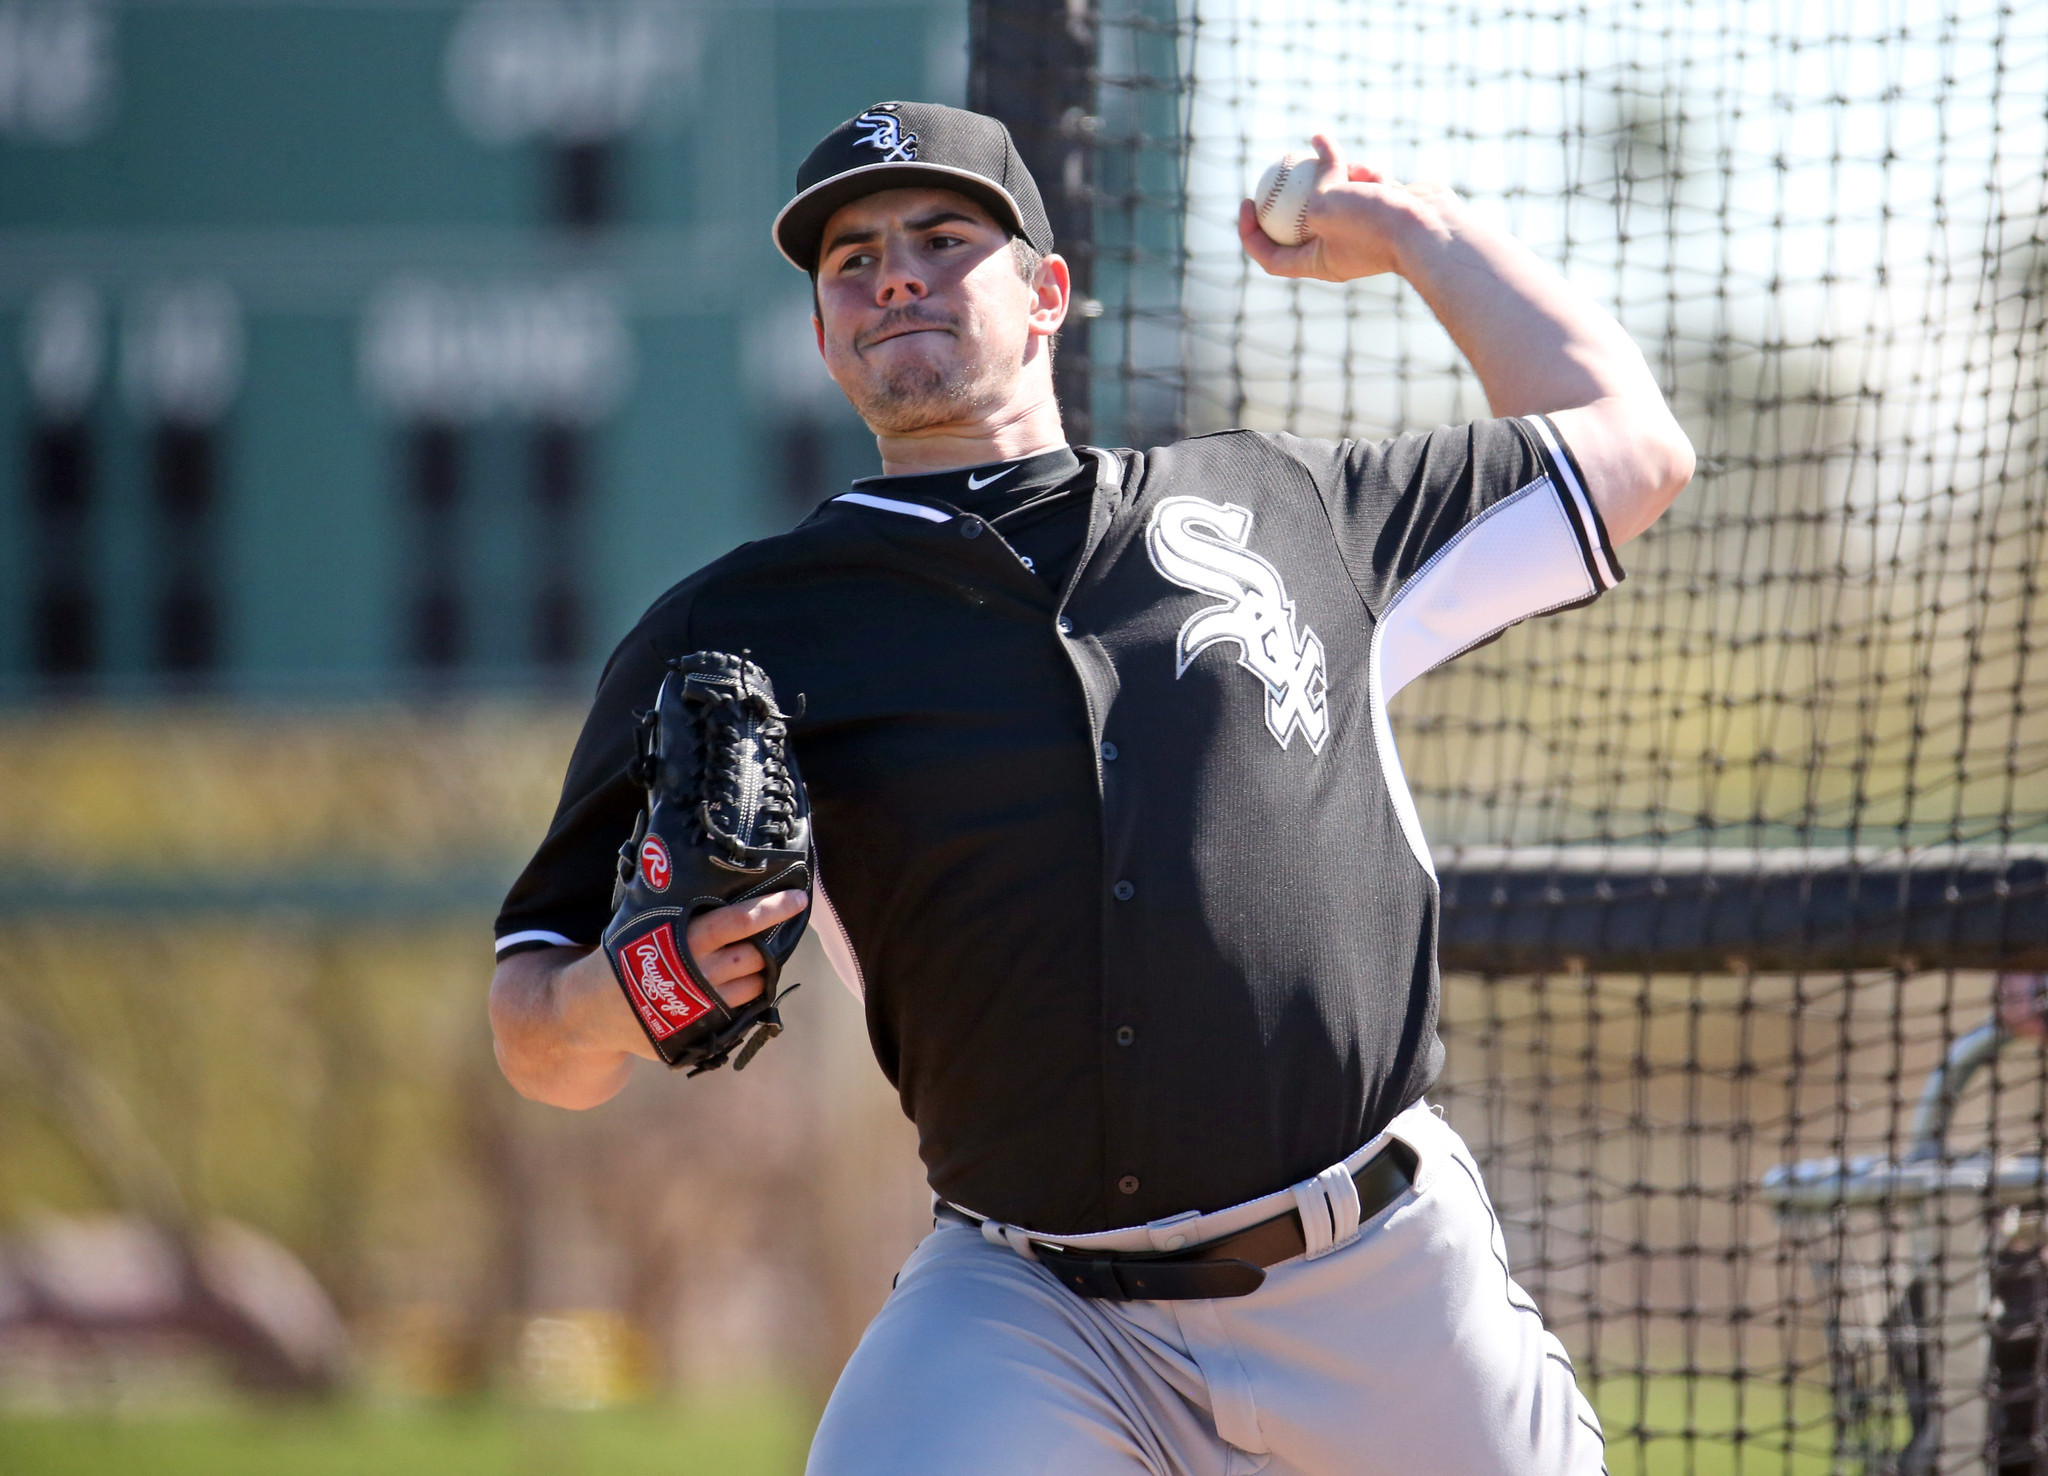 White Sox to call up top prospect Carlos Rodon